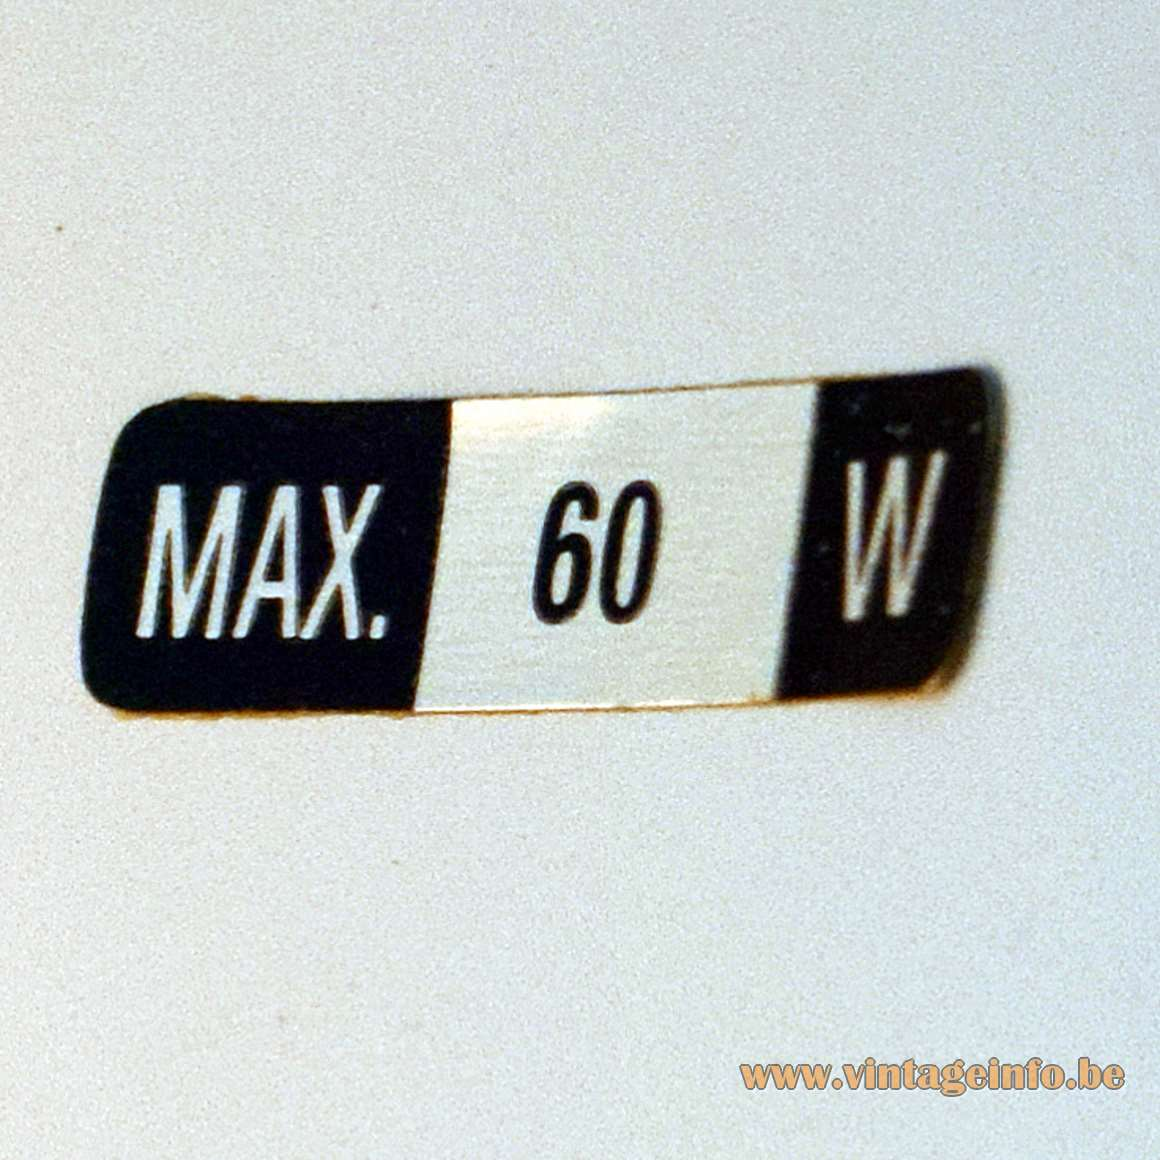 Fase Style 1980s Desk Lamp - Max. 60 W label glued in the lampshade